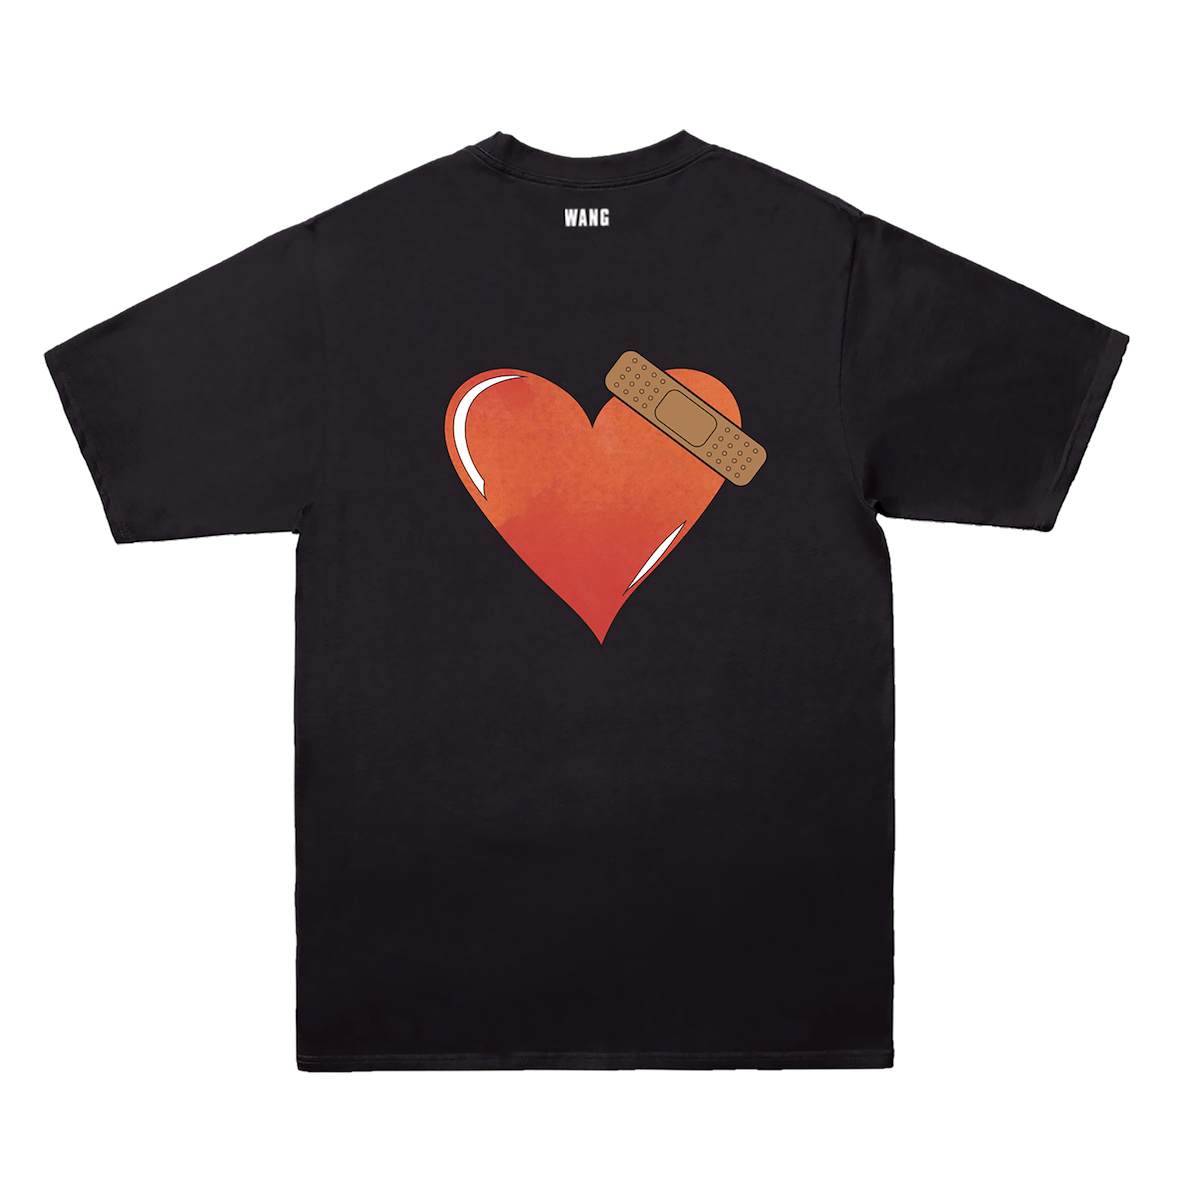 BULLET TO THE HEART Black T-Shirt